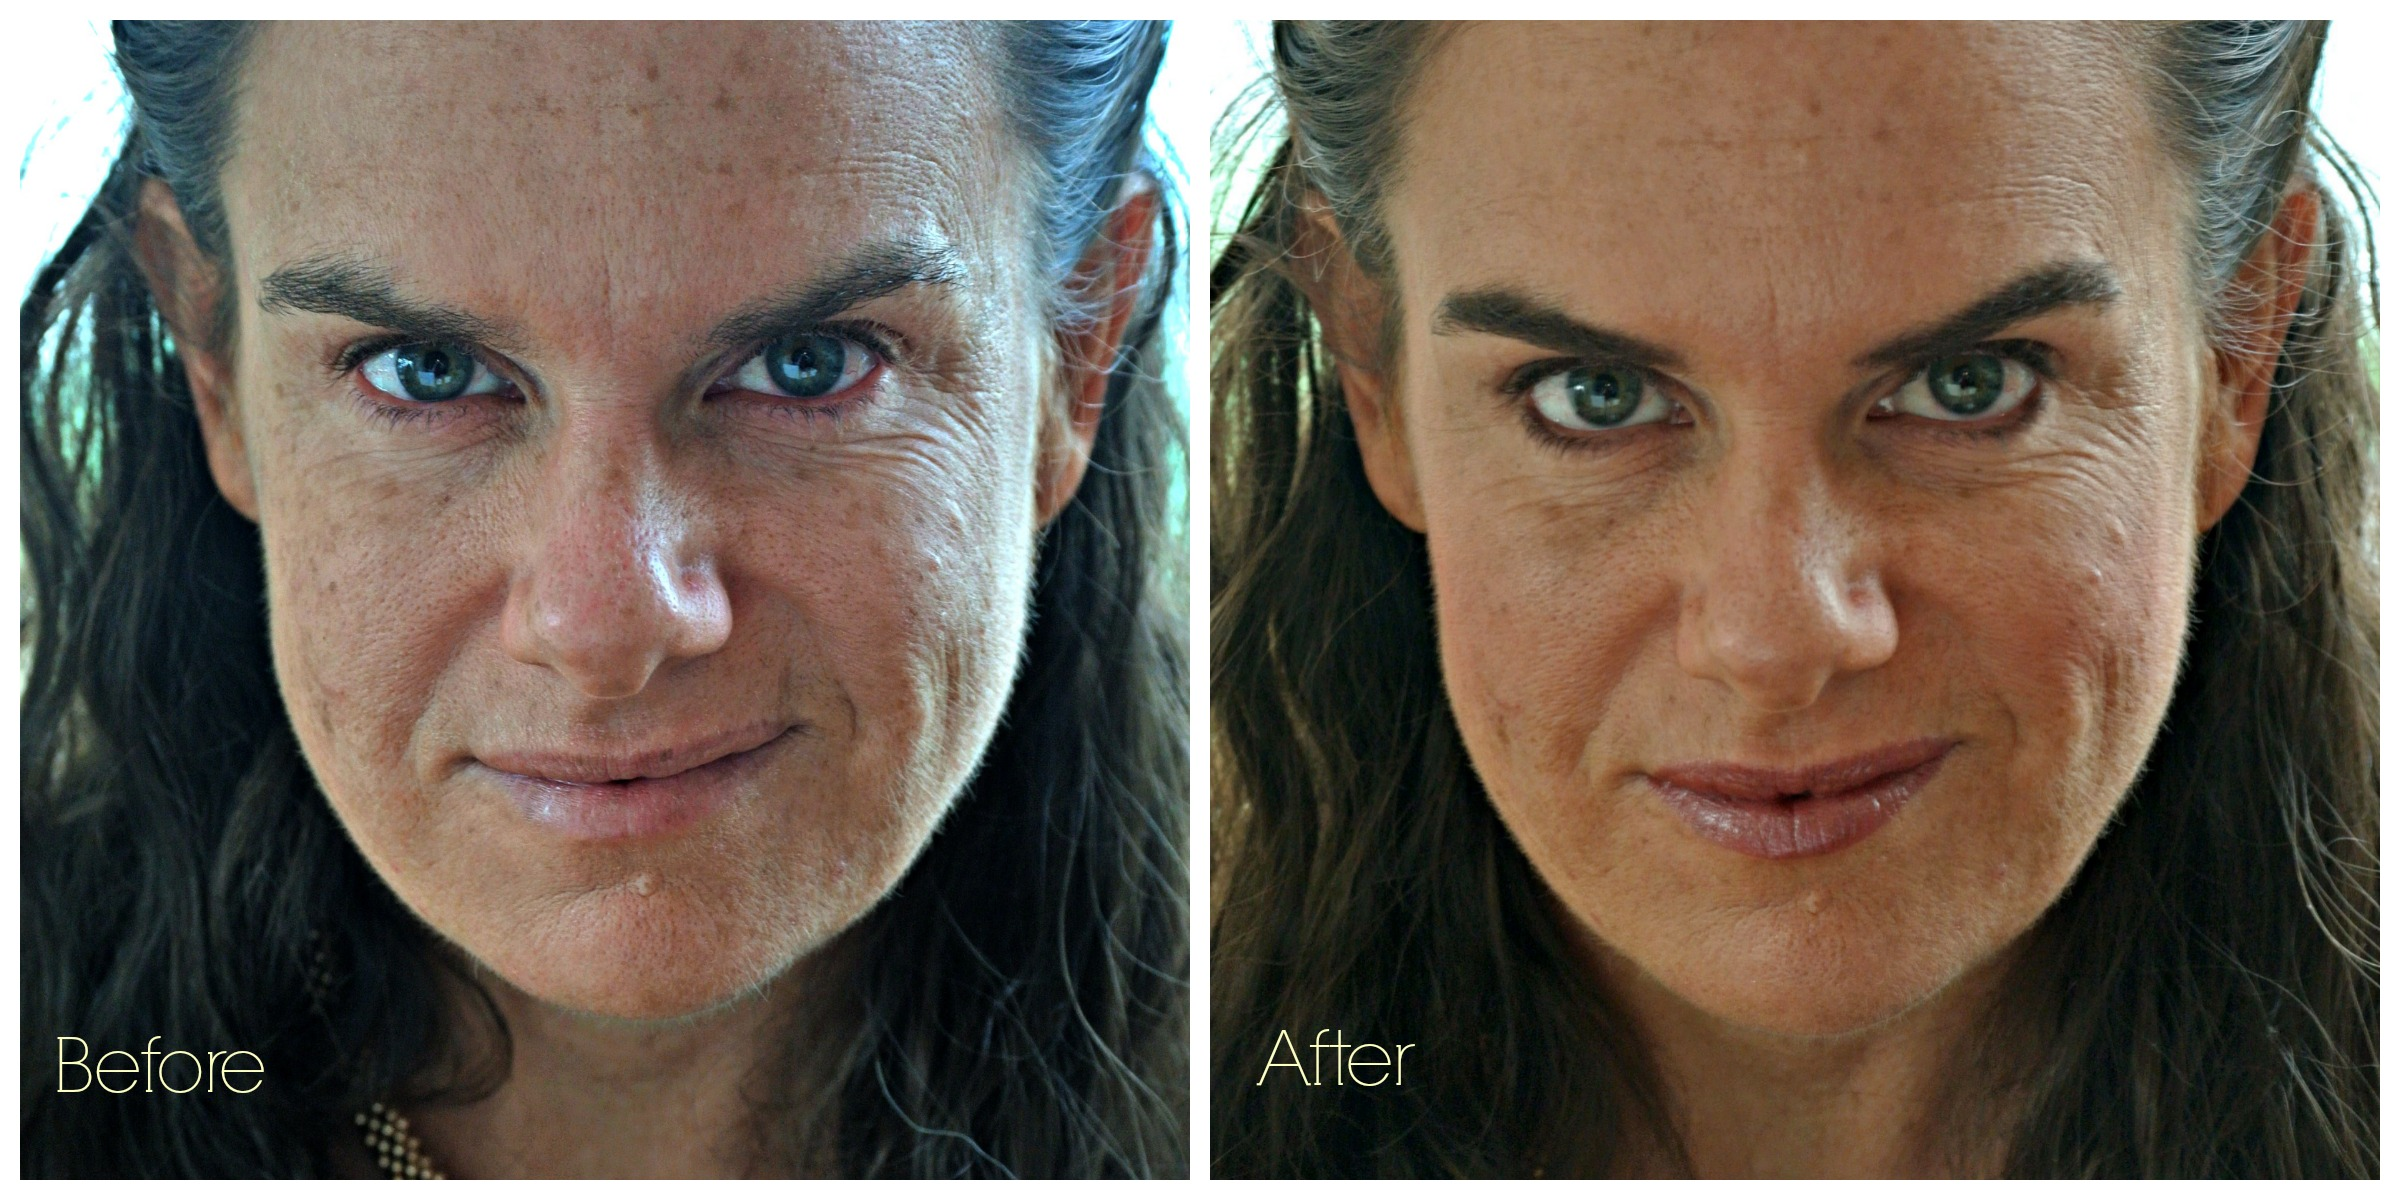 No Mascara Before and After